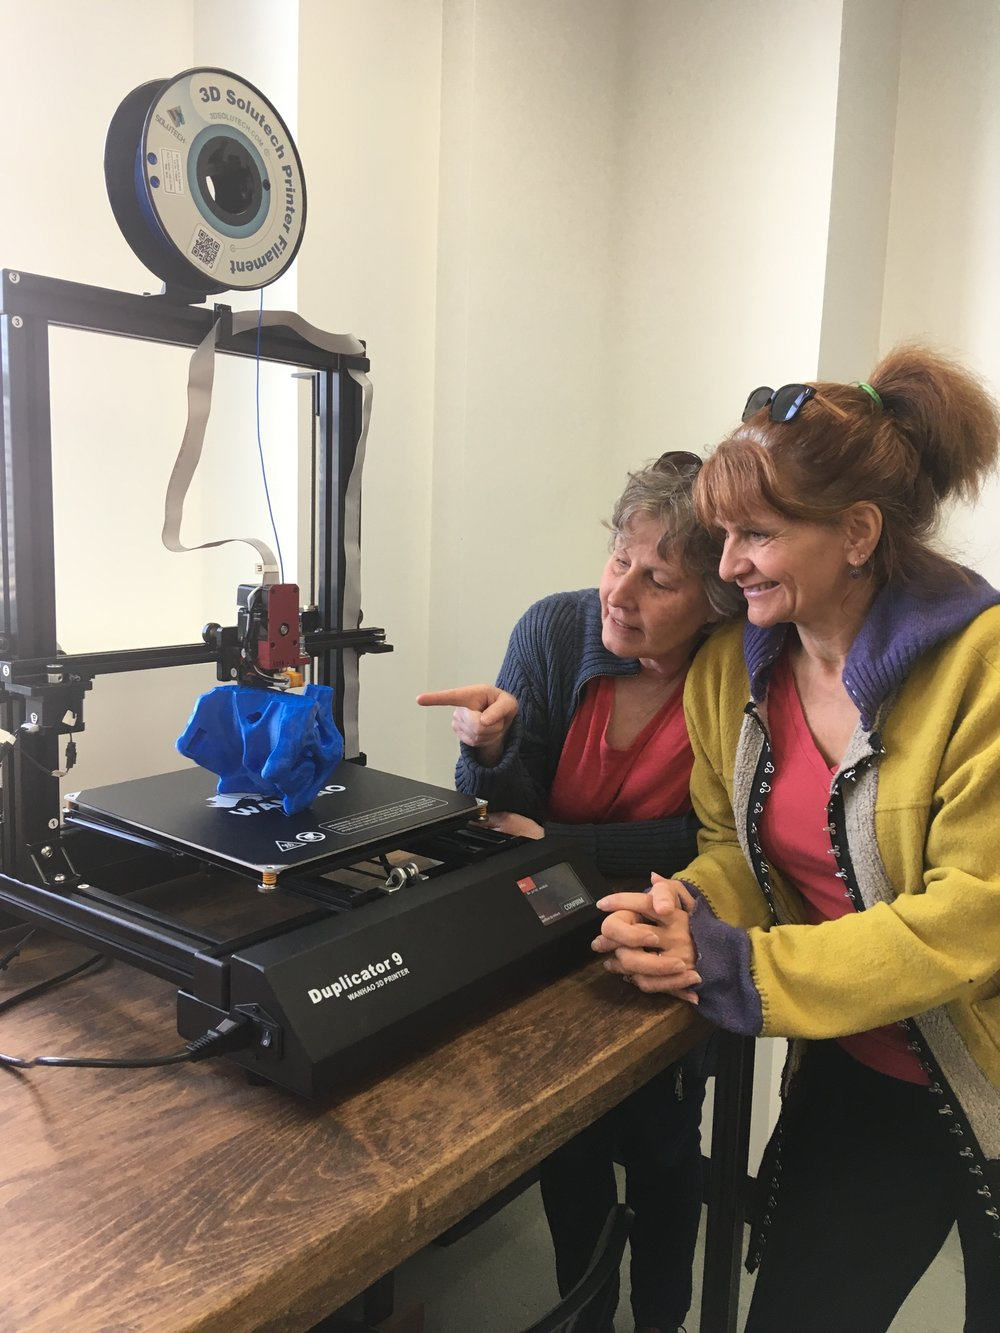 Rena and Peggy check out a large scale 3D printer at Maker North.